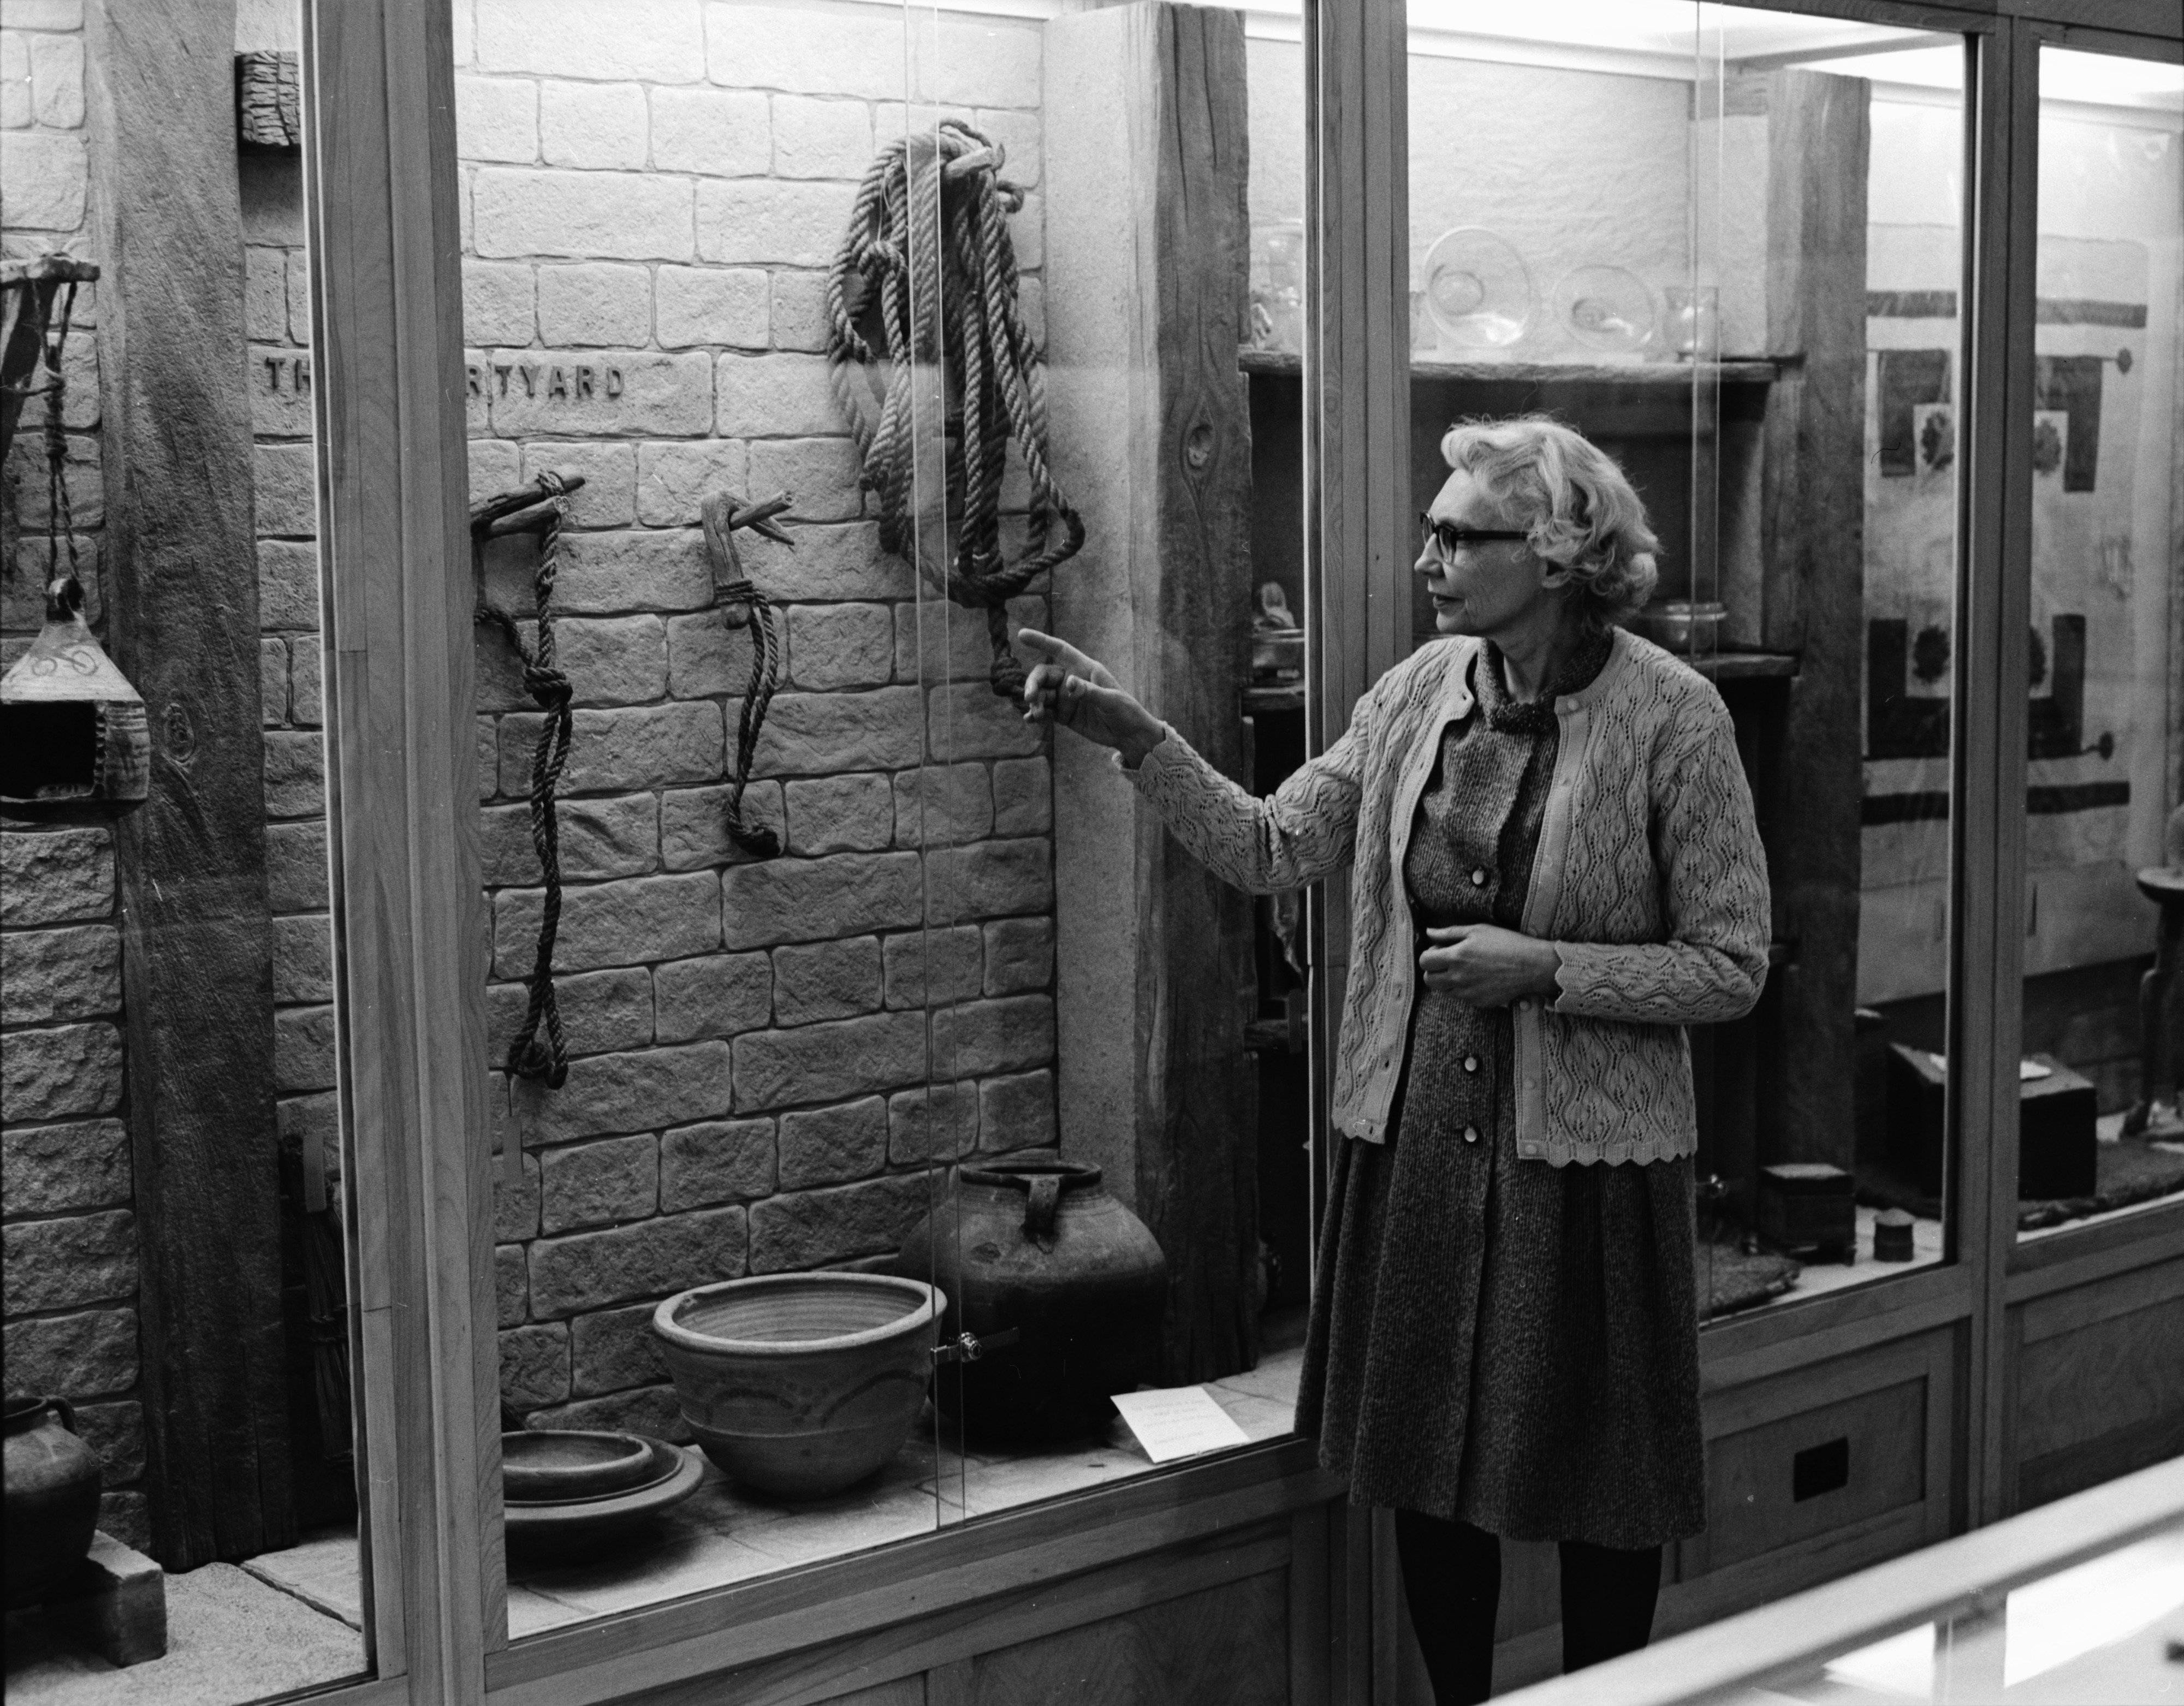 Louise A. Shier, Curator and Acting Director of Kelsey Museum, March 1972 image